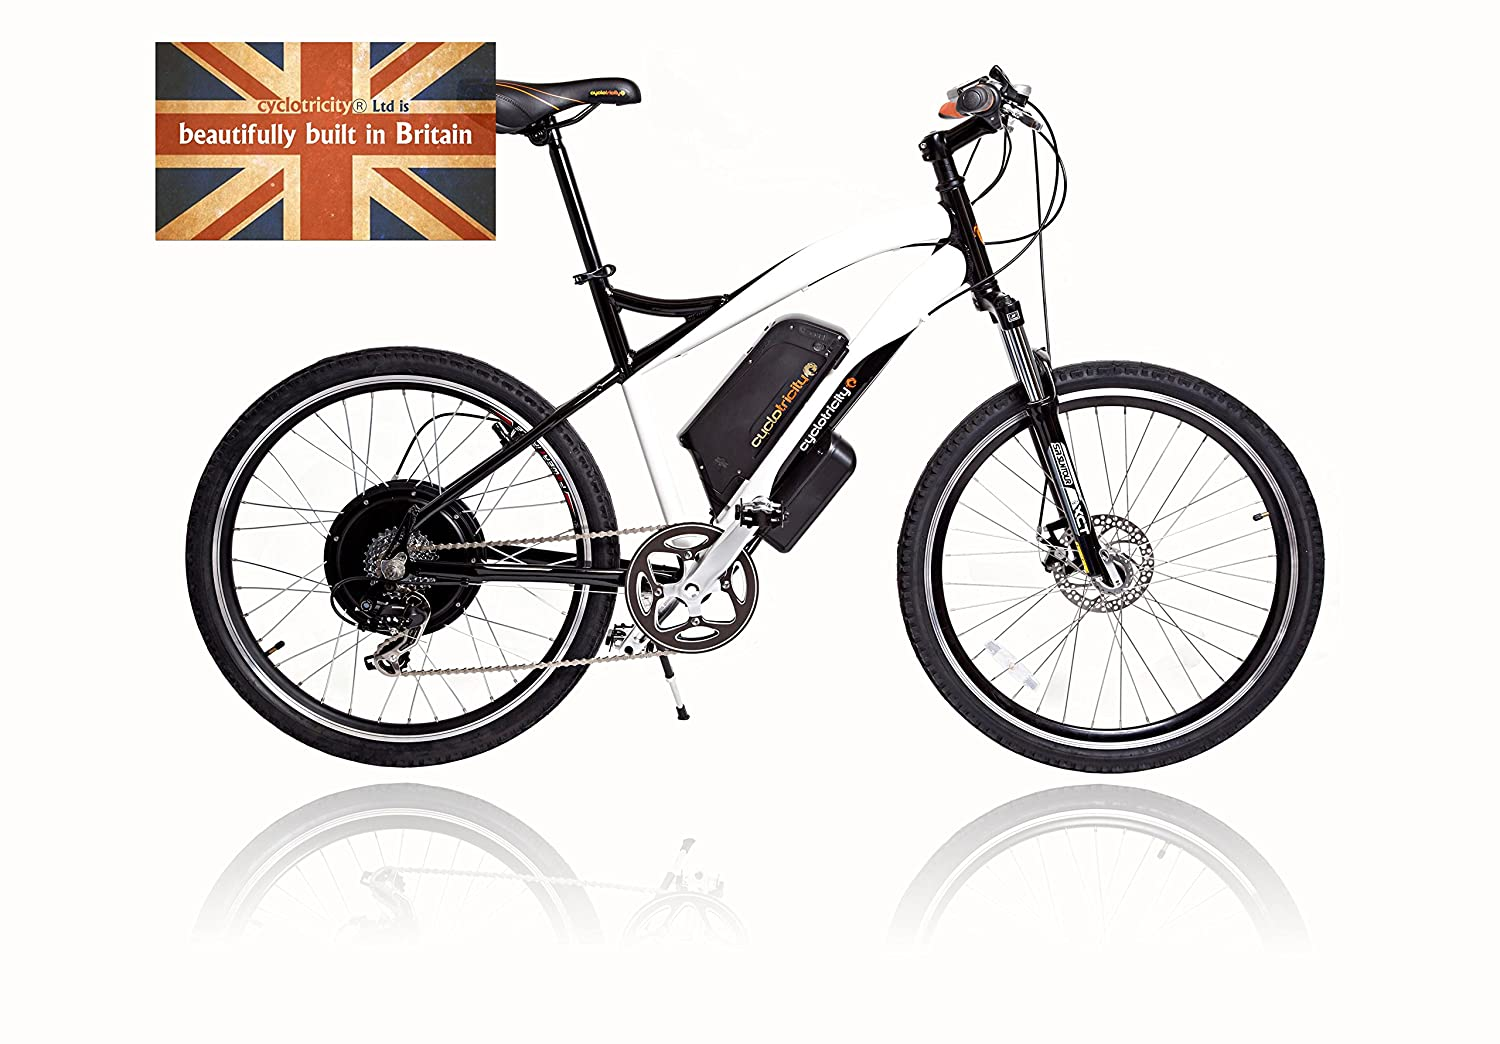 cyclotricity E-Bike, Stealth 500 W 15 Ah 50,8 cm Lithium-Ionen Elektromotor Fahrrad, E-Bike, Power eBike Stealth 500w 15Ah 20